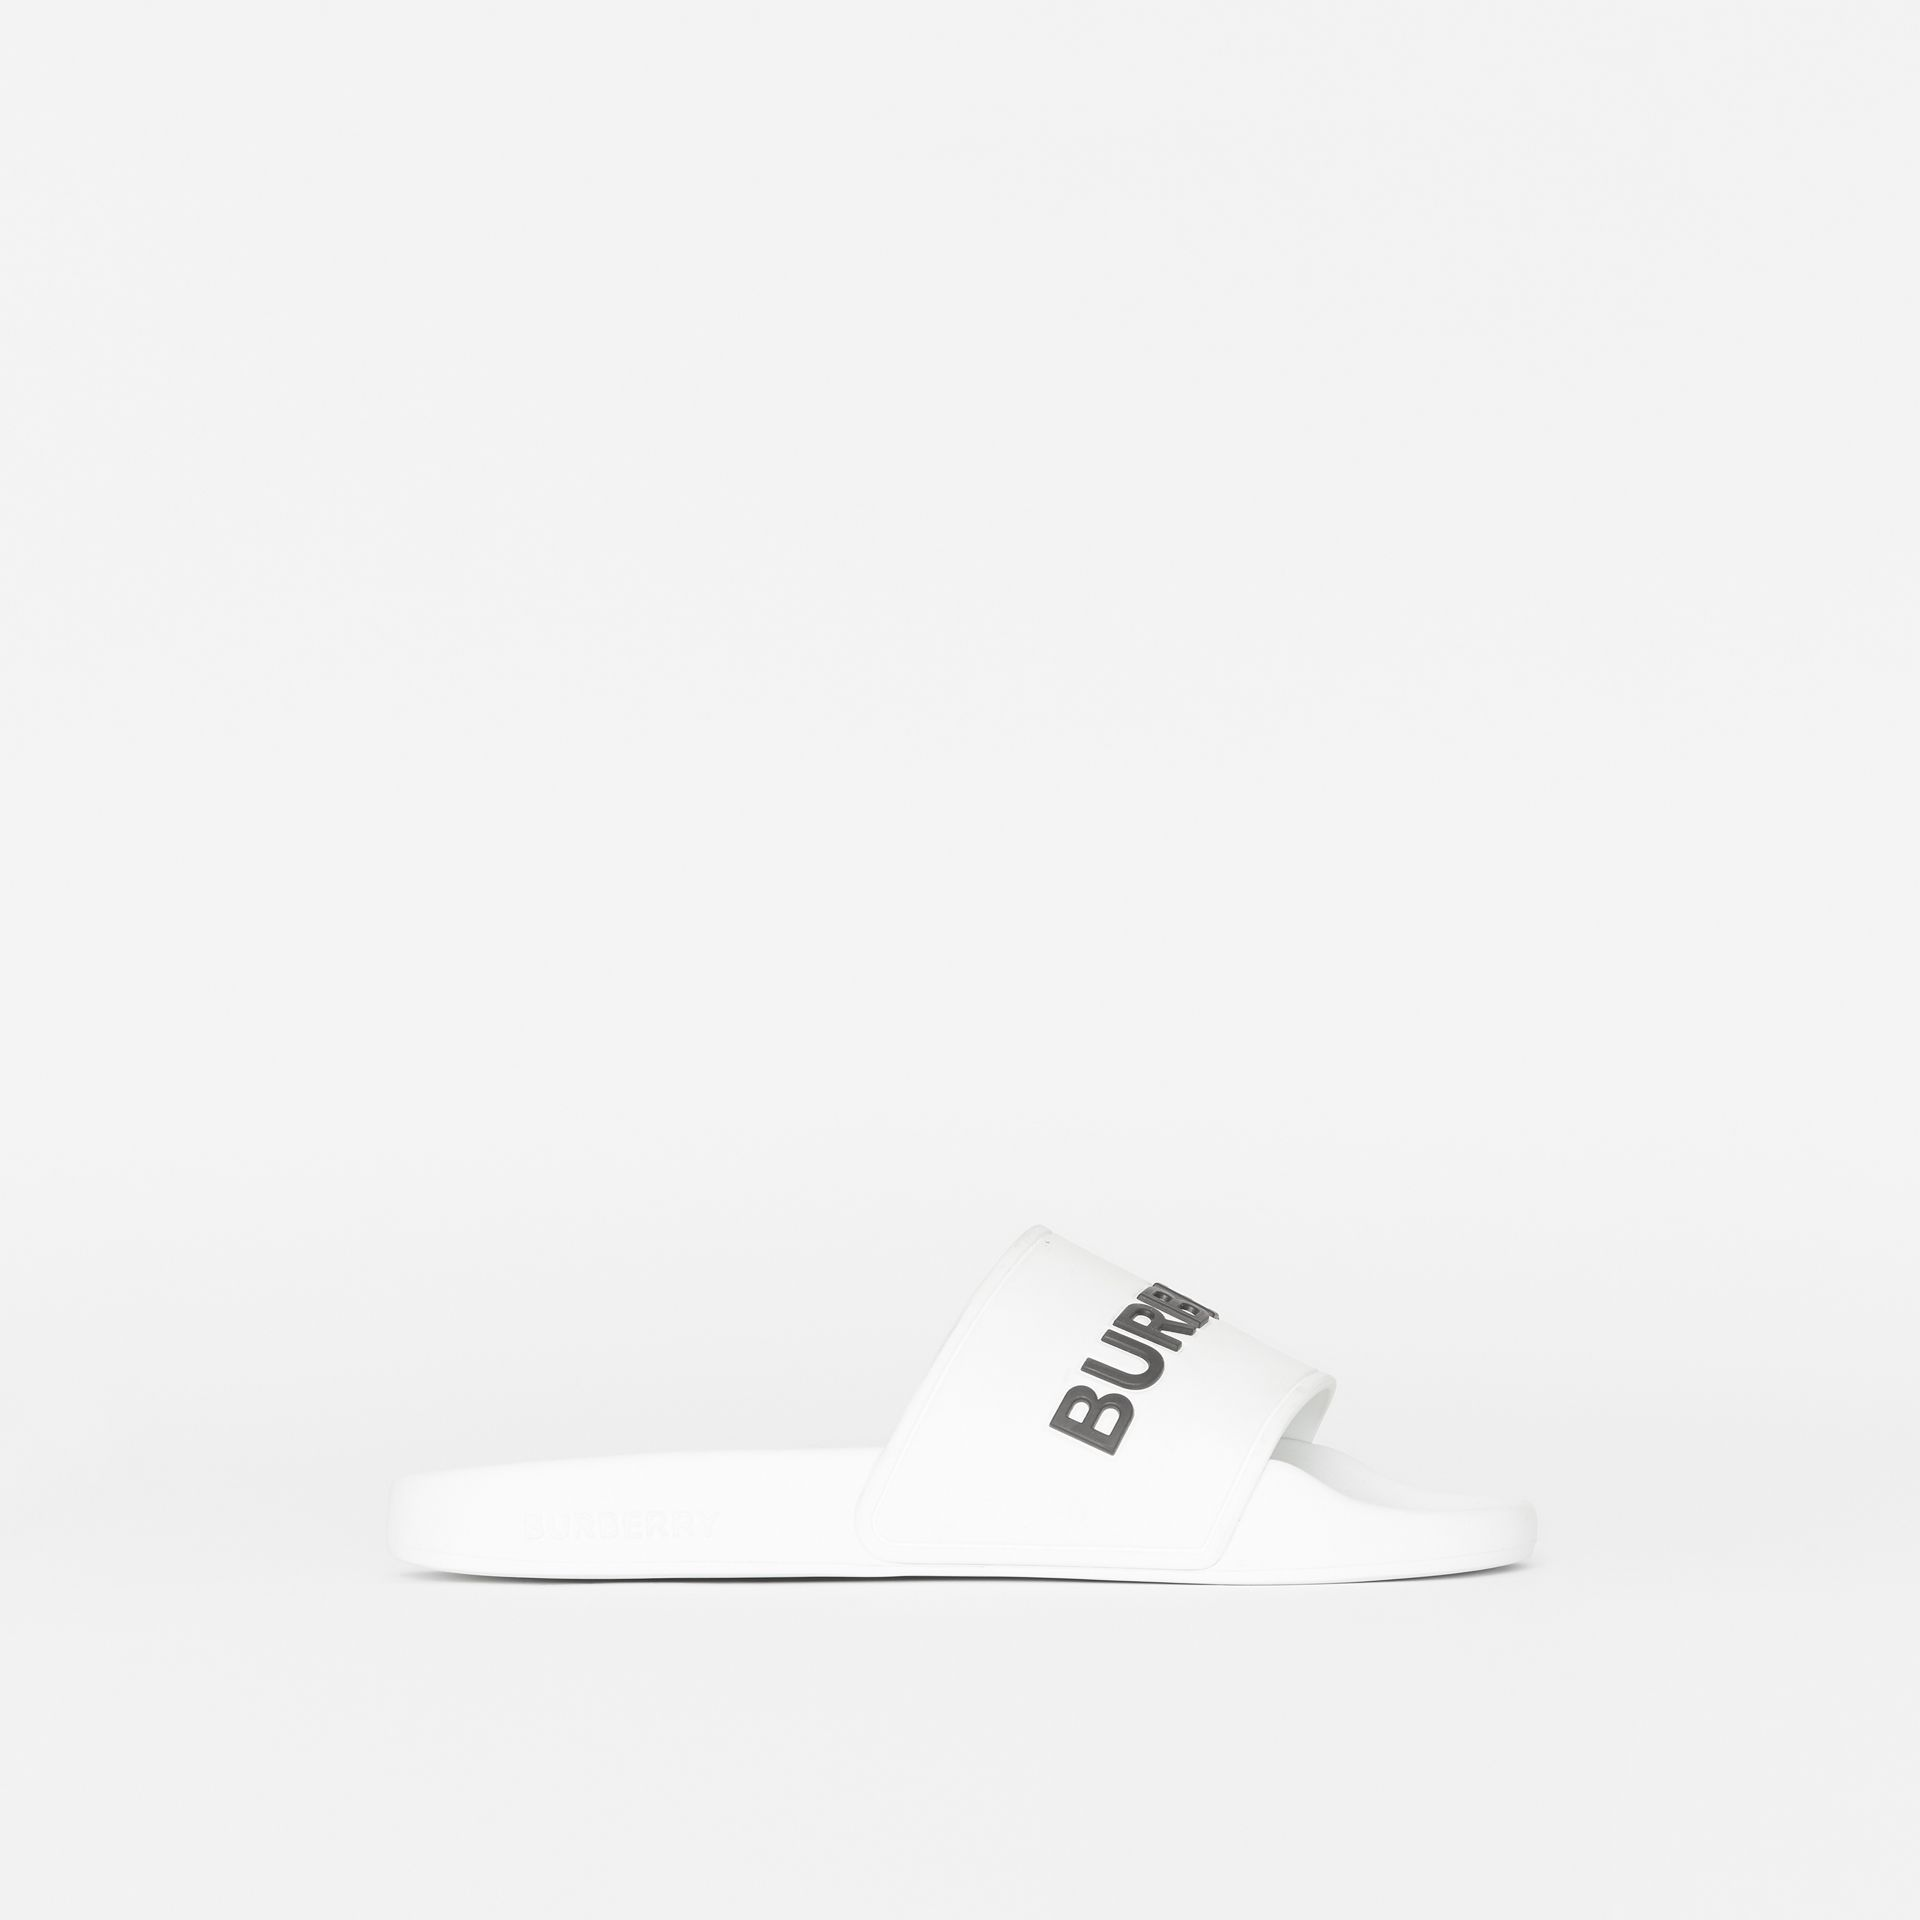 Kingdom Motif Slides in Optic White - Women | Burberry Australia - gallery image 4